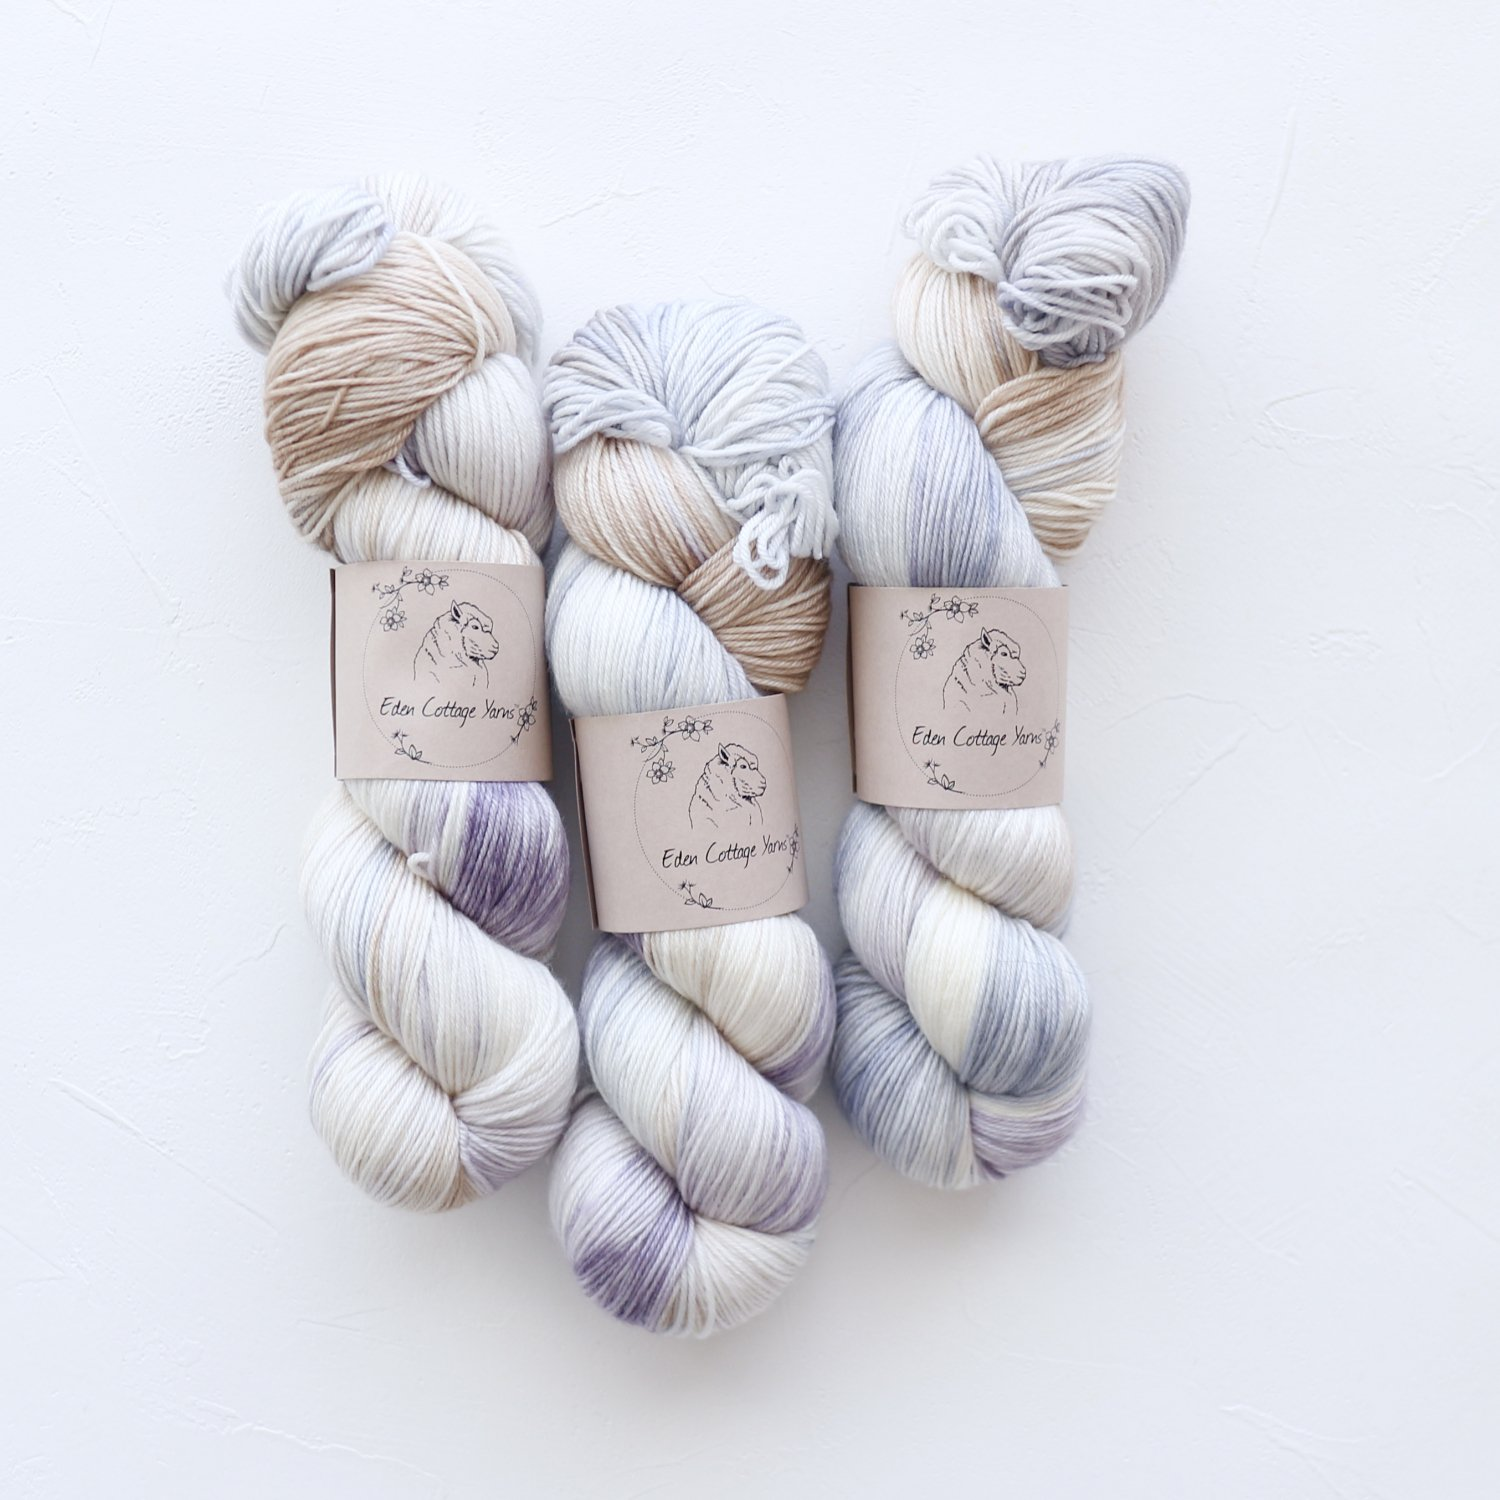 【Eden Cottage Yarns】<br>Pendle 4ply<br>Coast